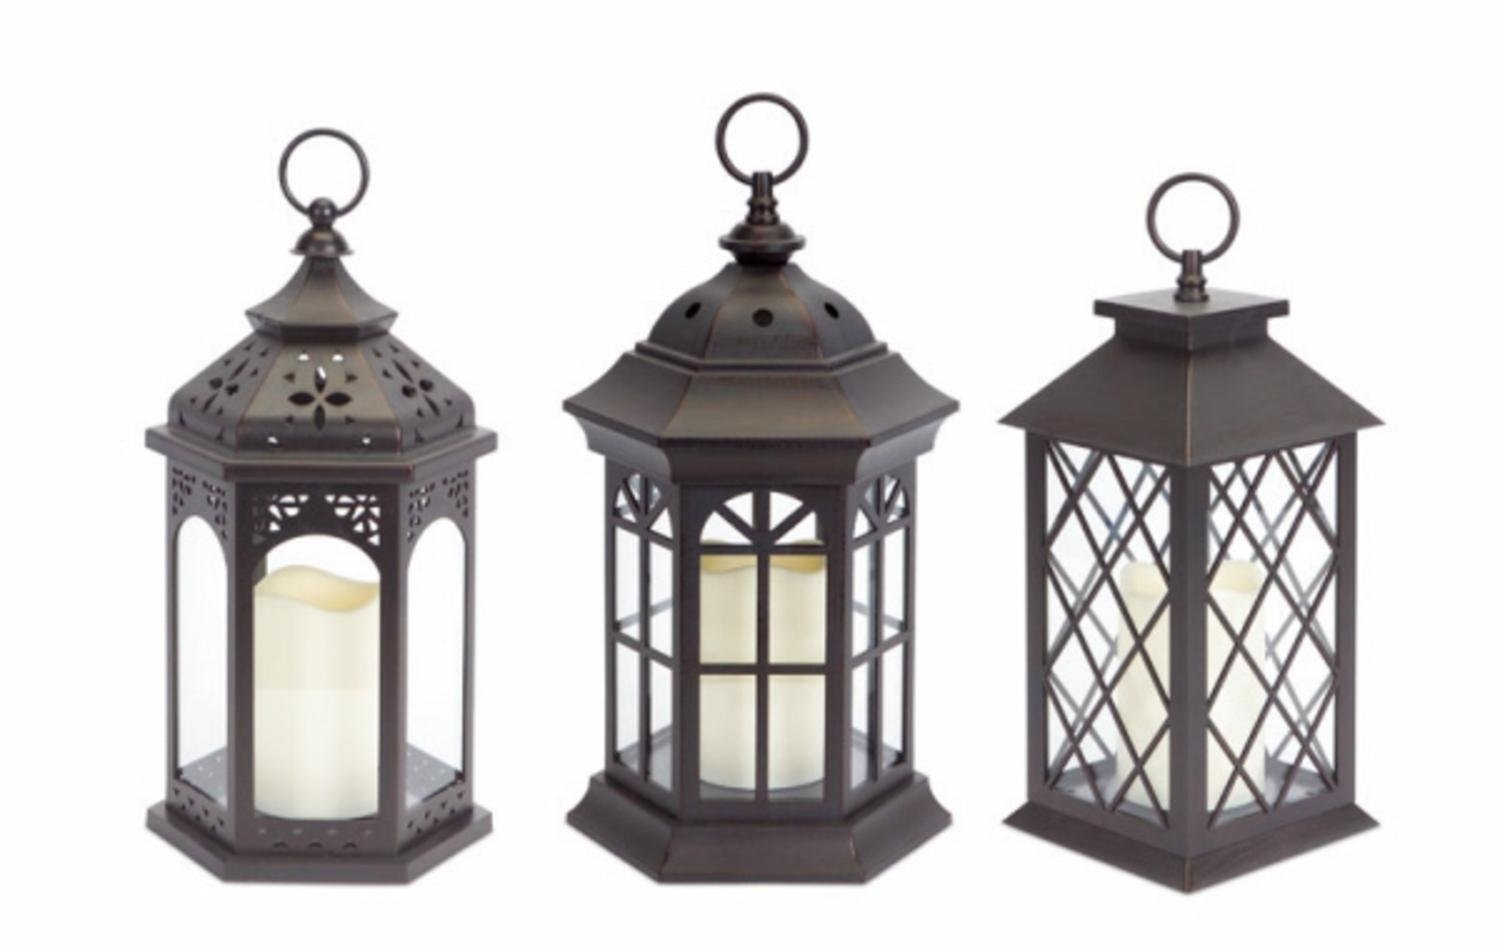 Cheap Outdoor Lanterns Candle, Find Outdoor Lanterns Candle Deals On with regard to Jumbo Outdoor Lanterns (Image 5 of 20)